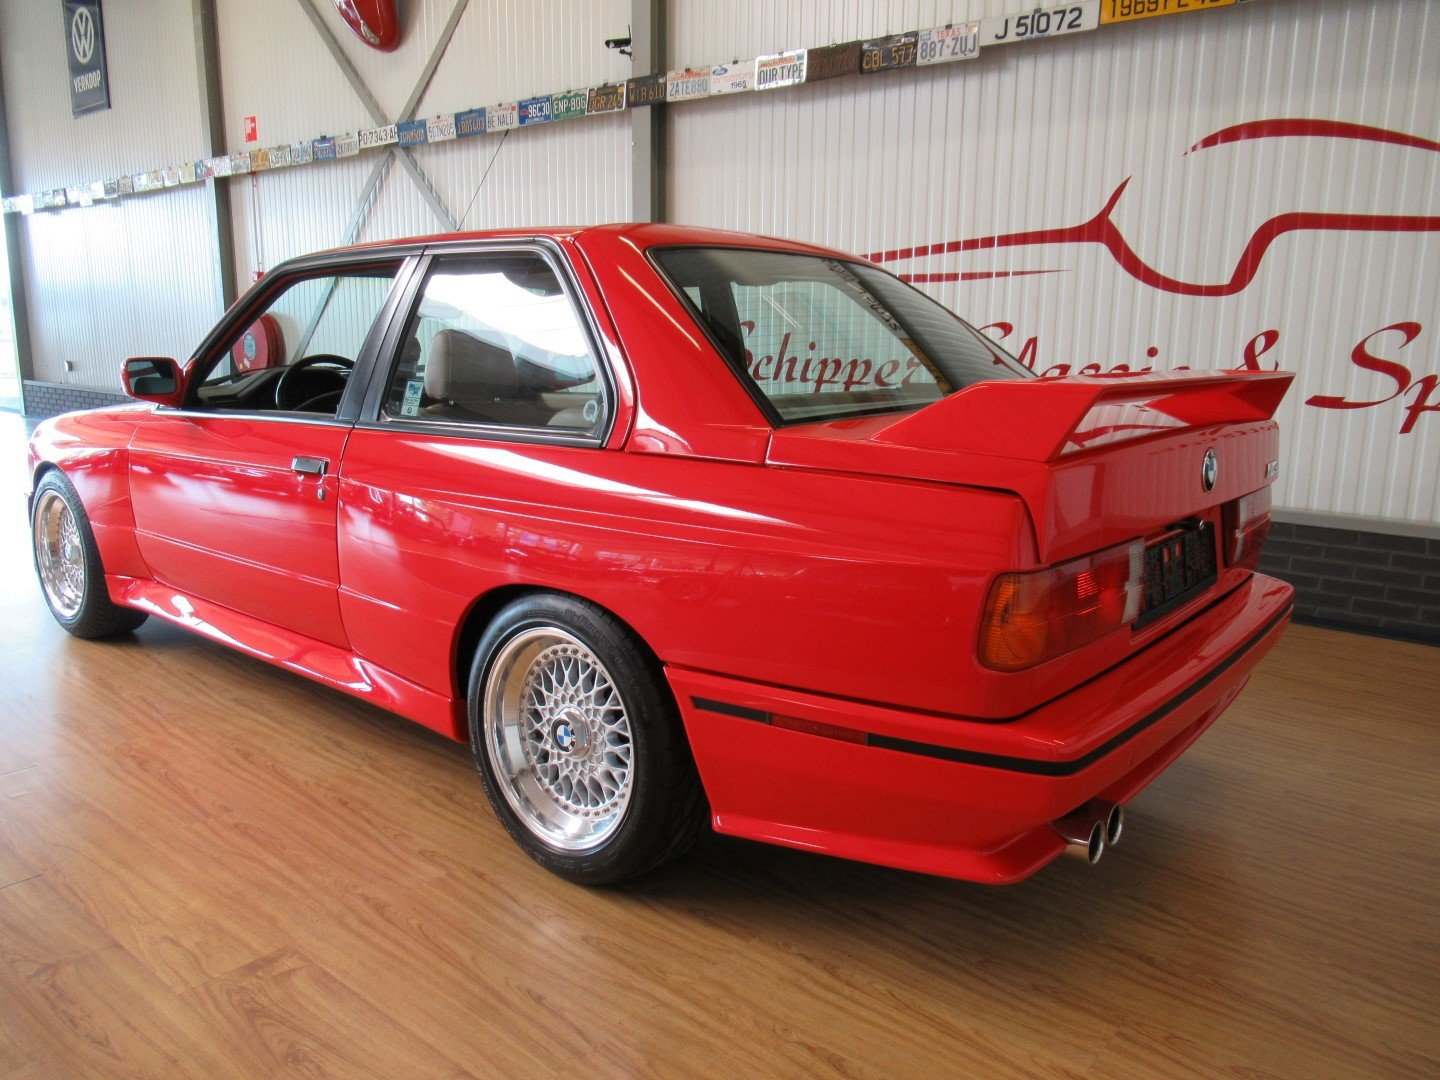 1990 BMW BMW E30 M3 Brillantrot For Sale (picture 3 of 6)